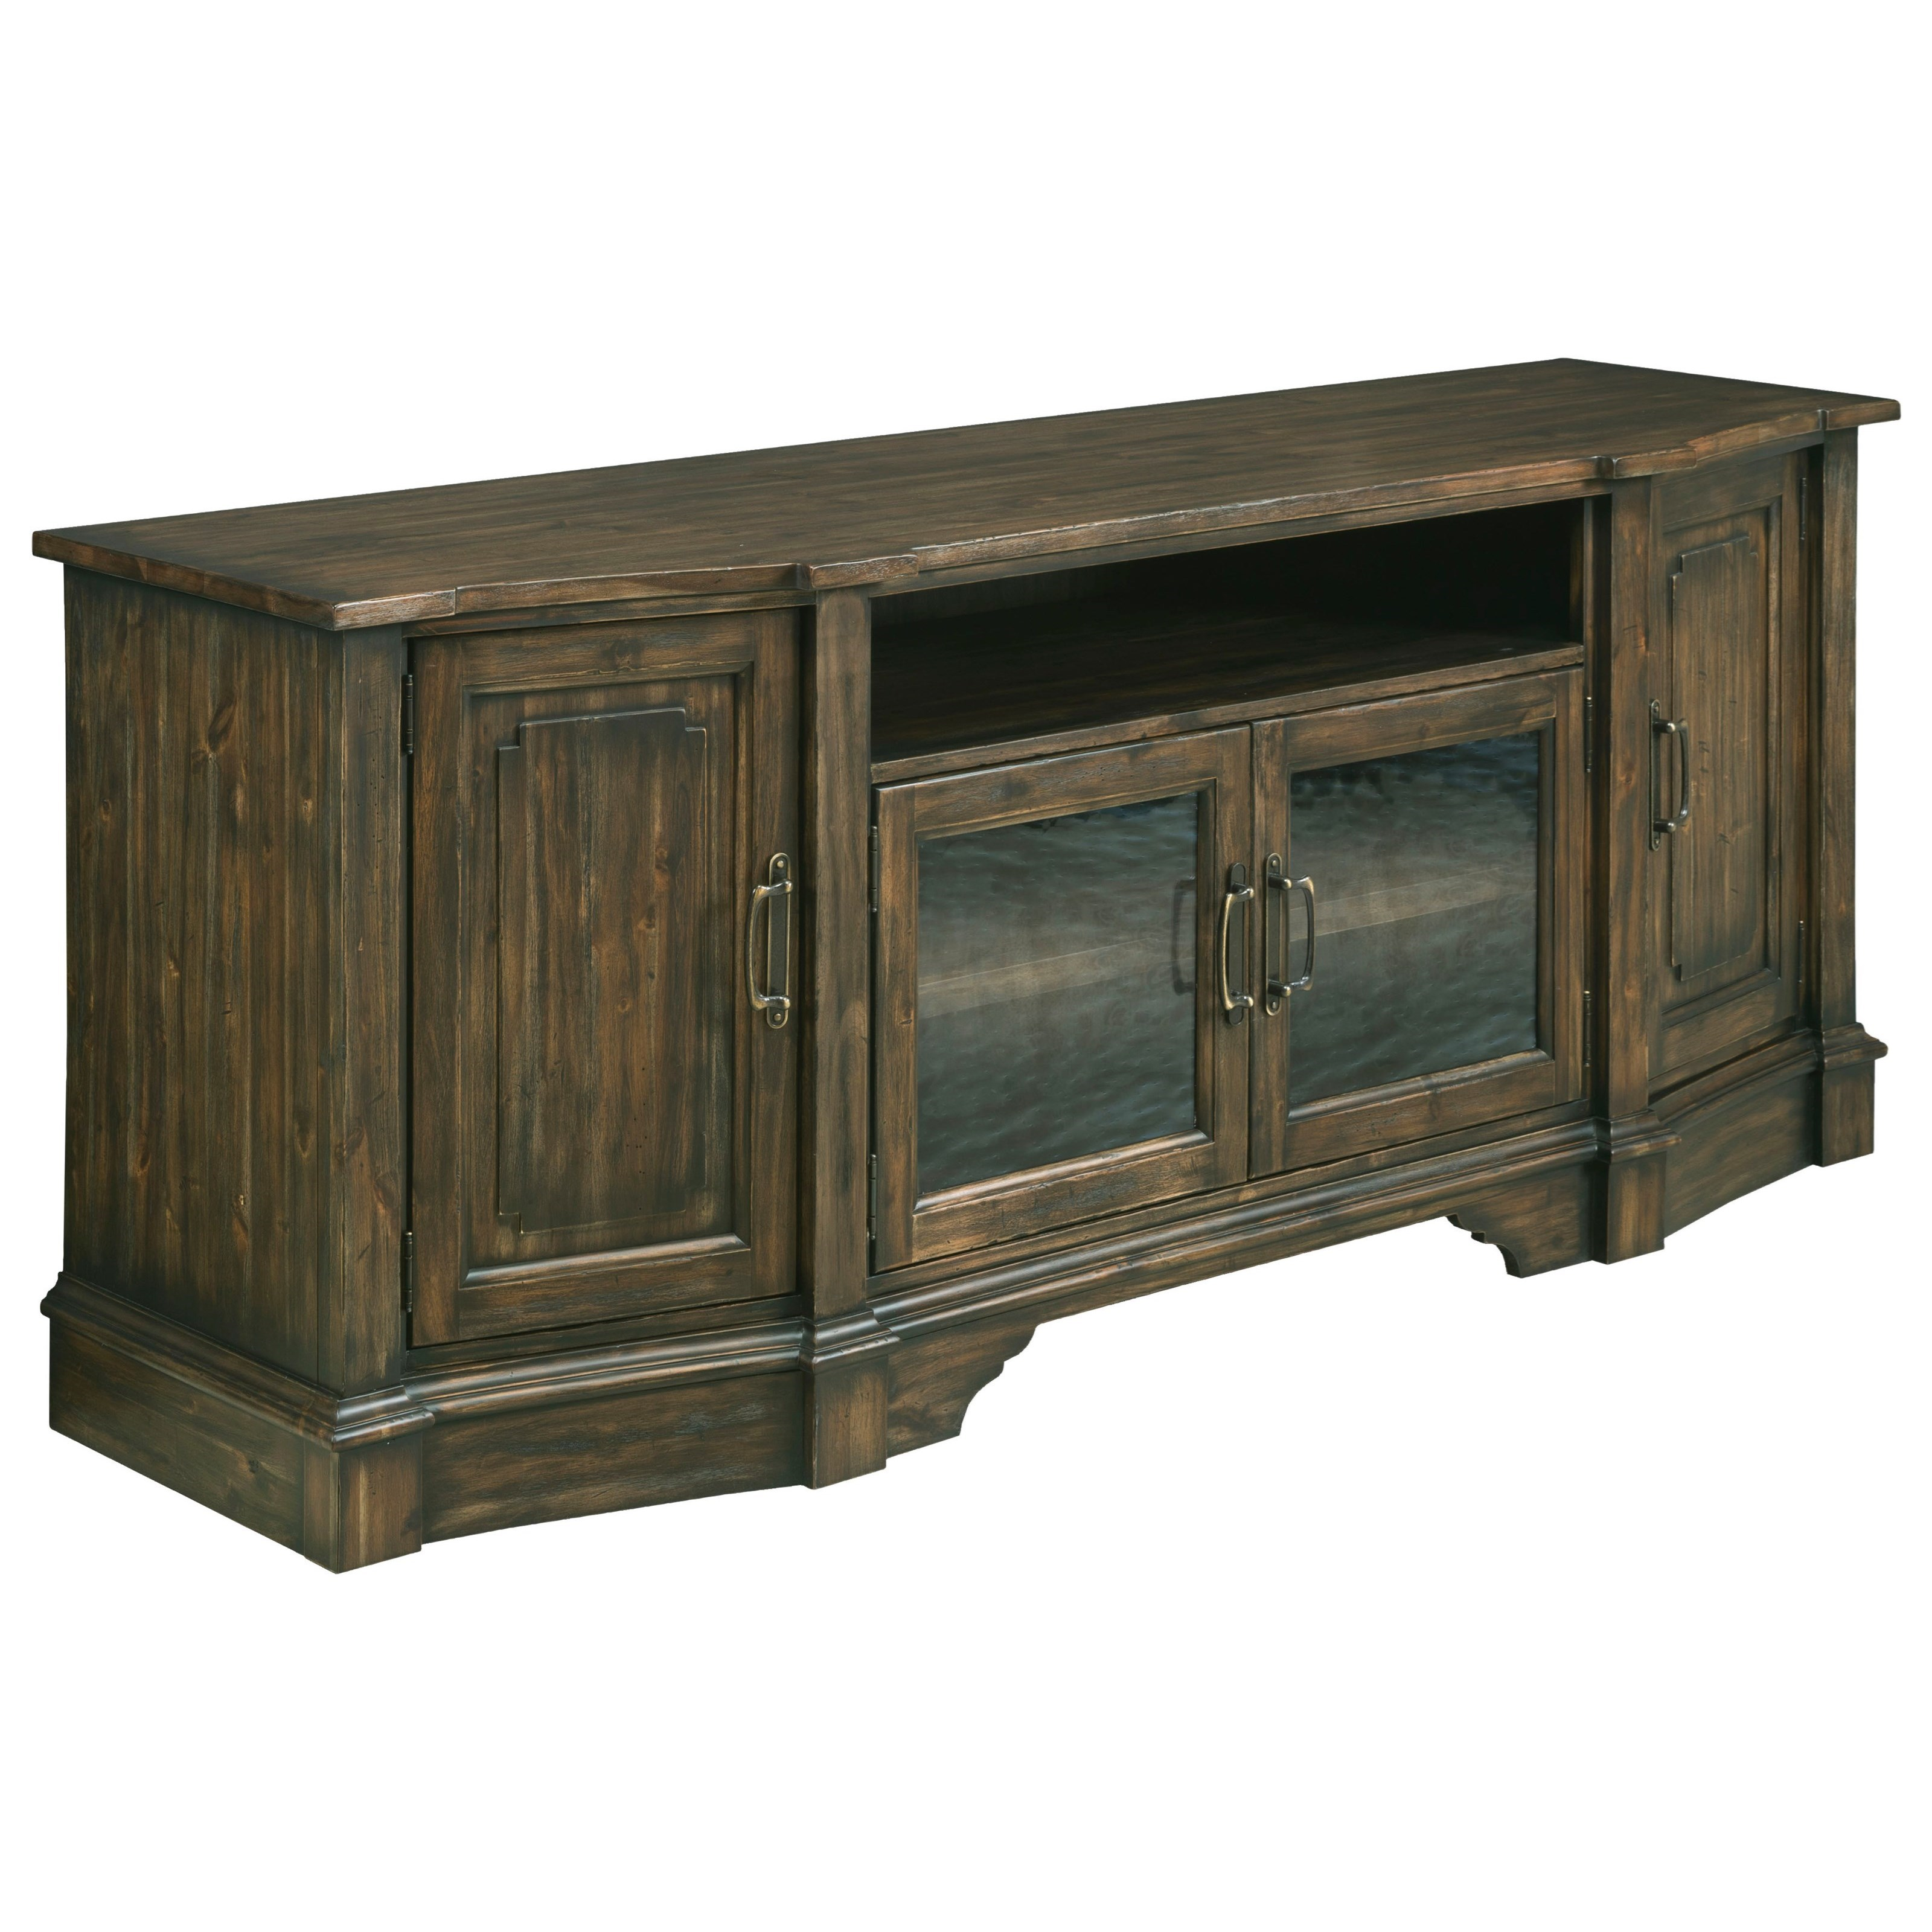 Kincaid Furniture Wildfire Wildfire Entertainment Cabinet - Item Number: 86-035